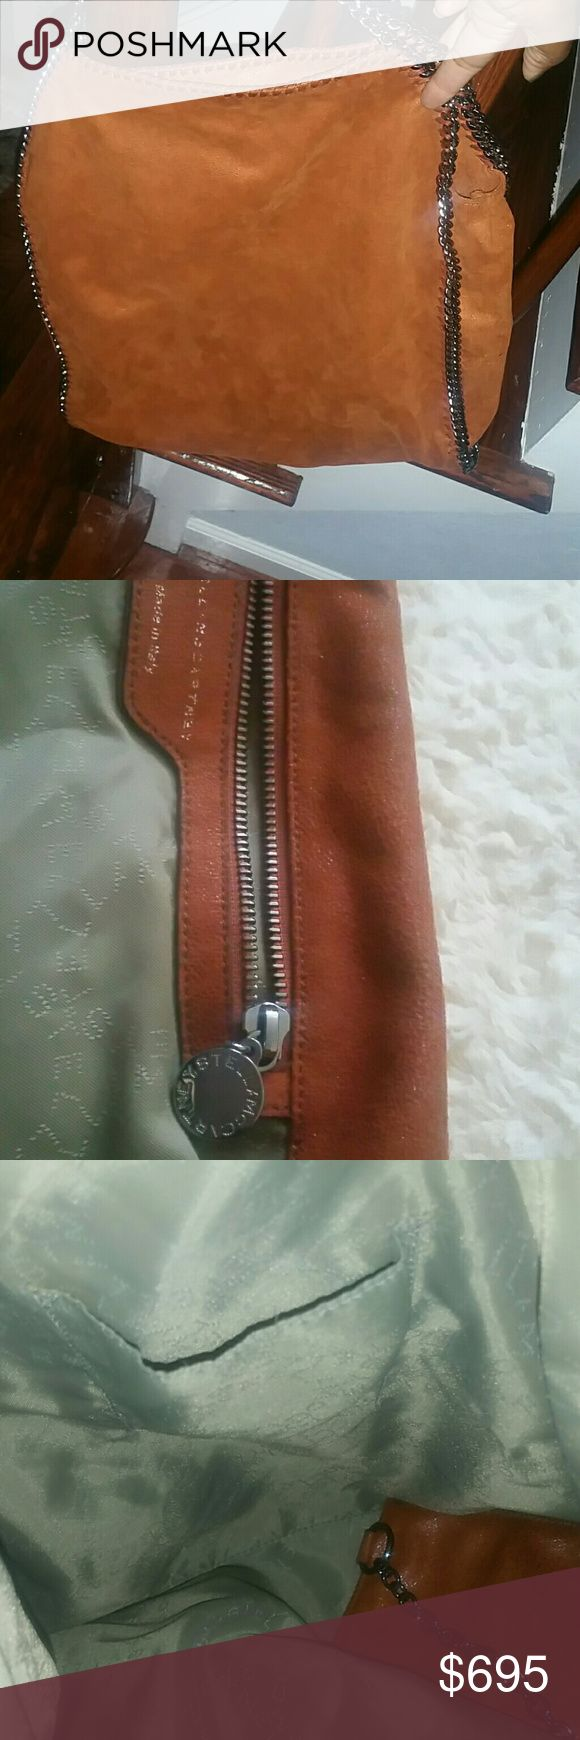 Authentic Falabella Big Tote Stella McCartney bag, mint condition outside and inside. Stella McCartney  Bags